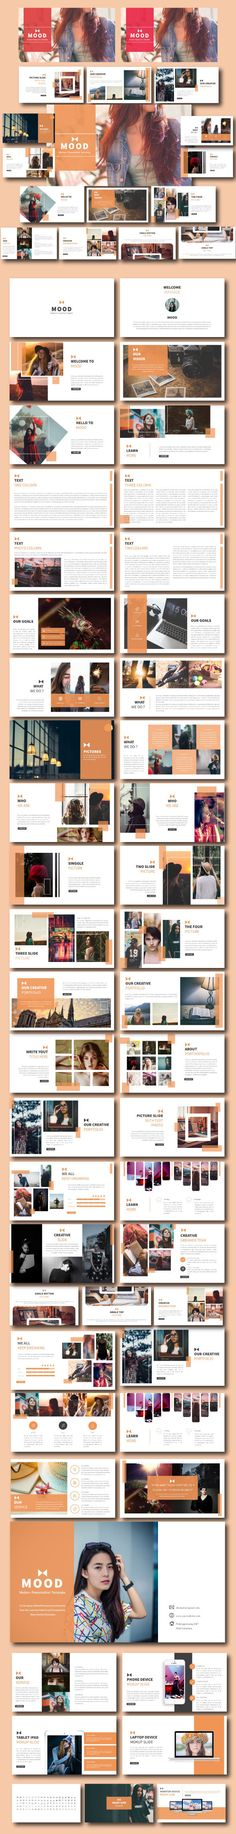 Mood Creative Presentation - Creative PowerPoint Templates